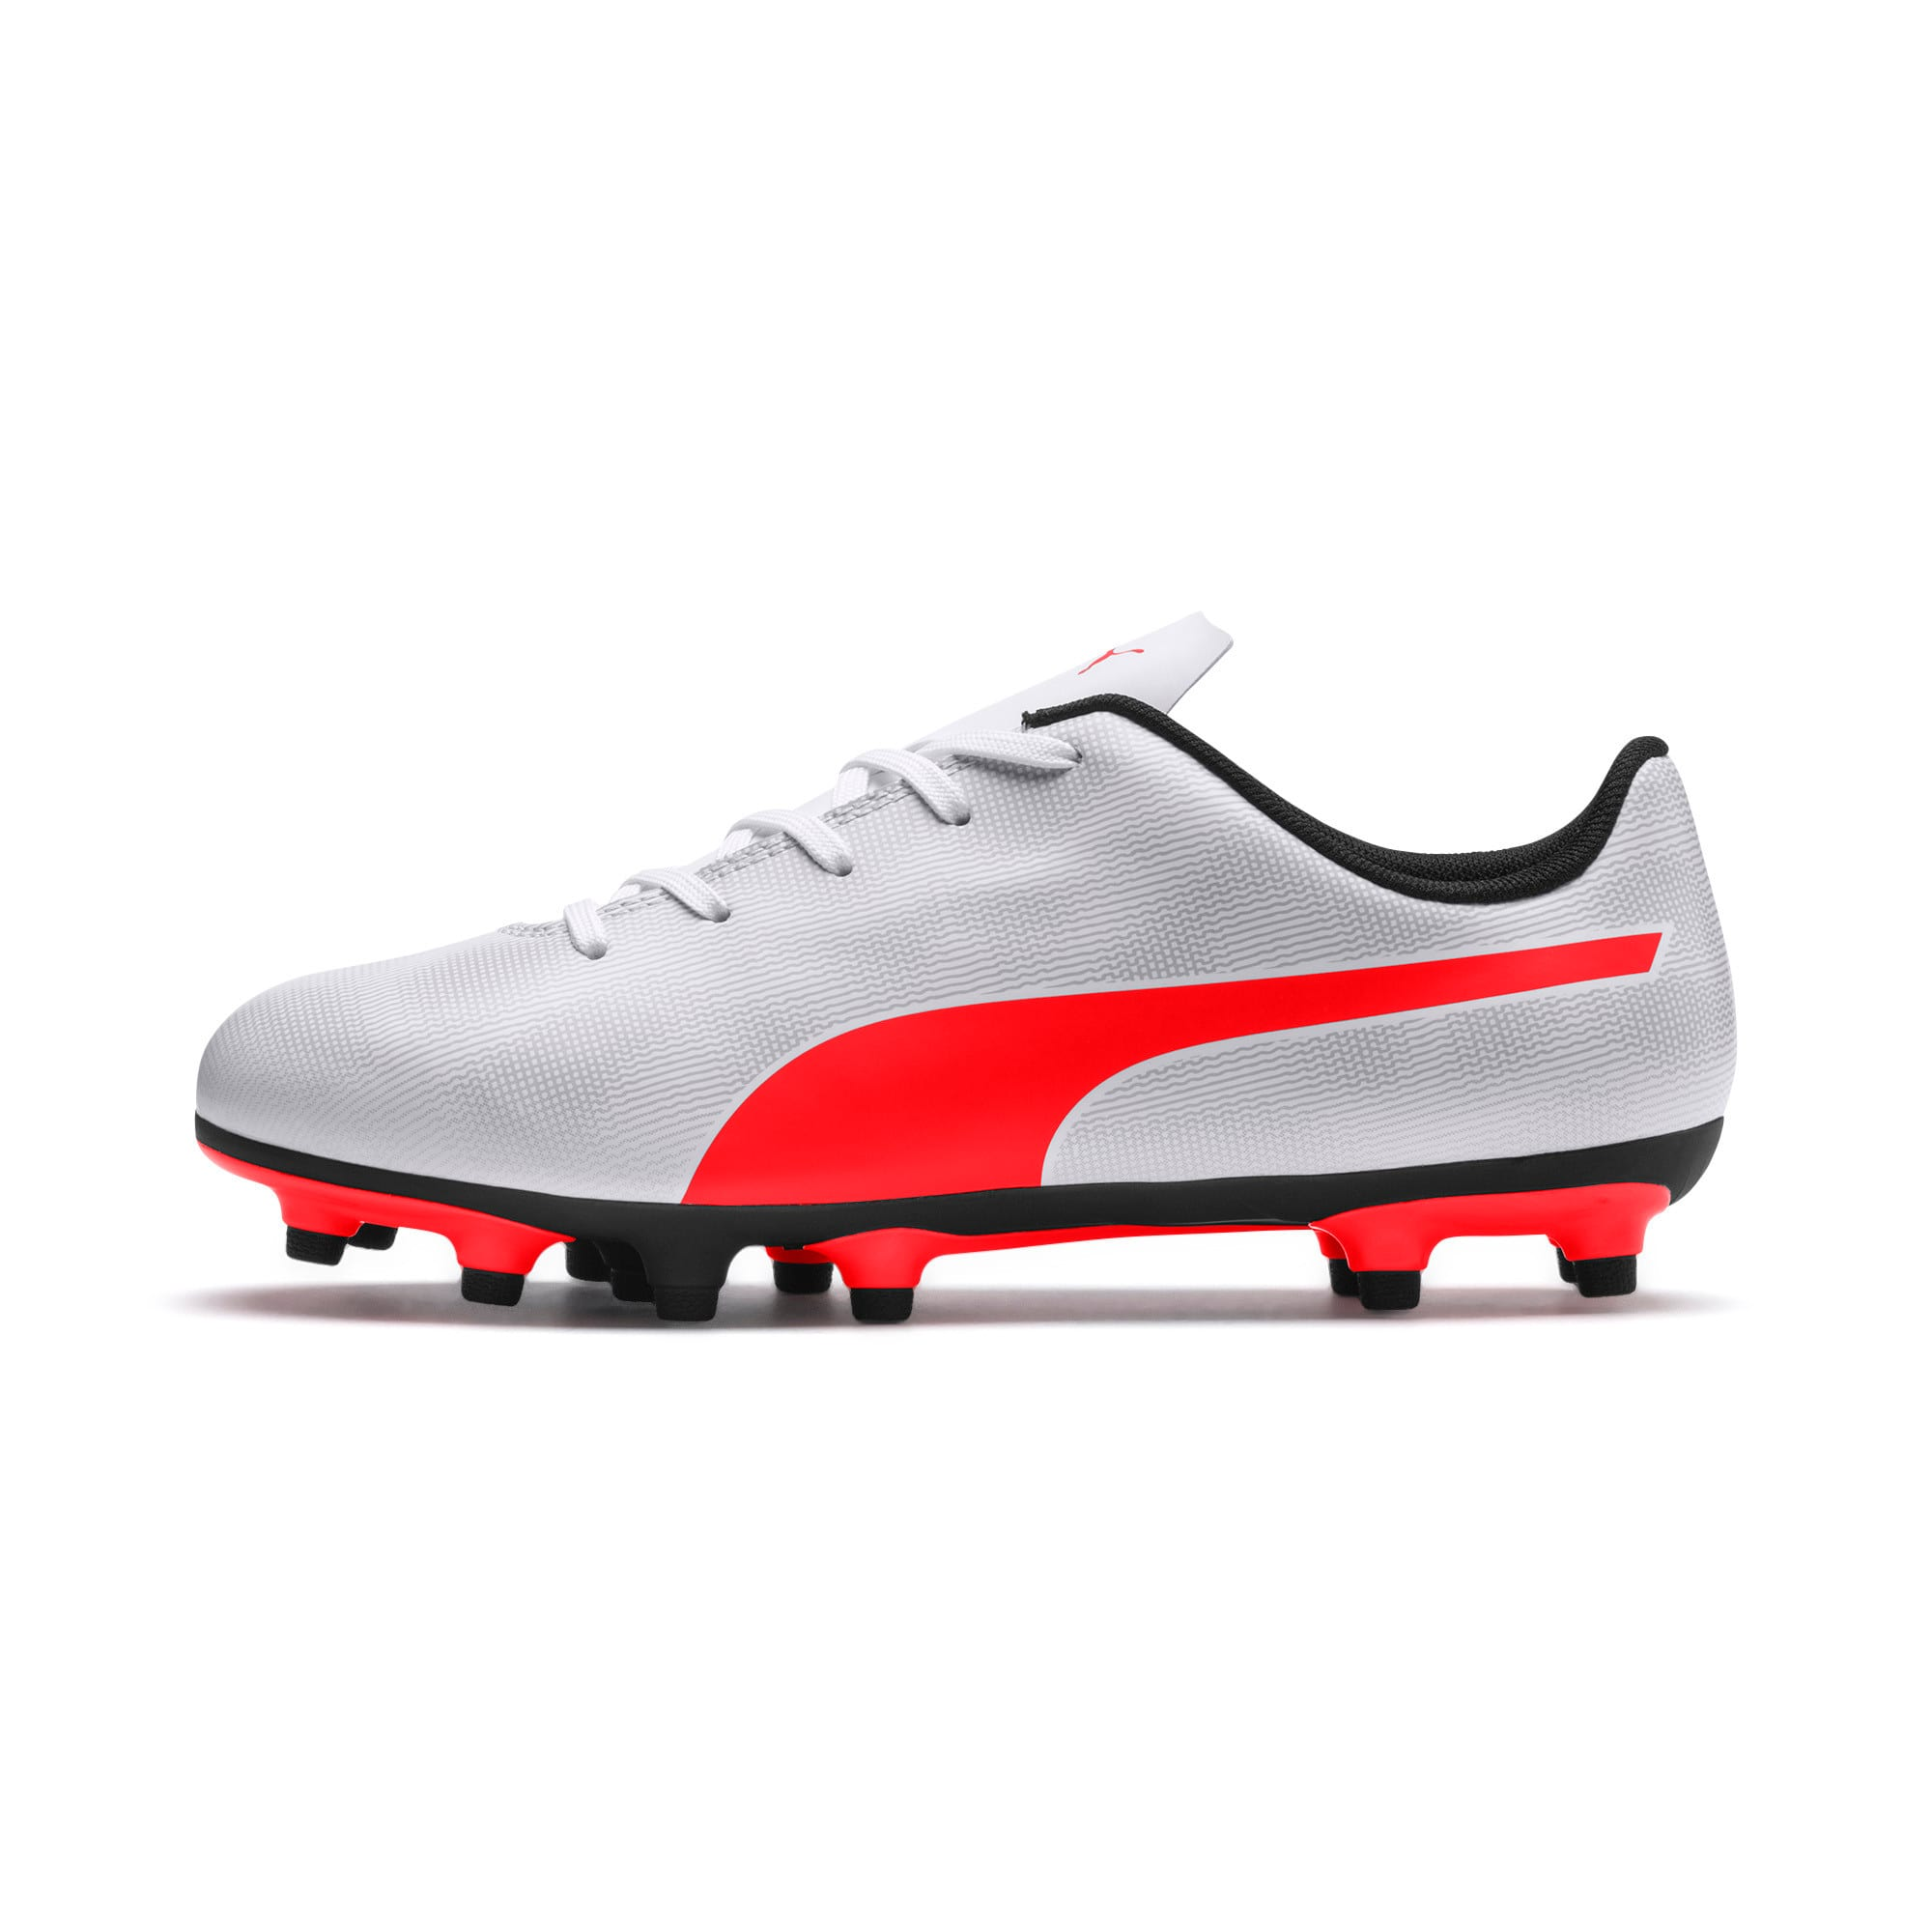 Thumbnail 1 of Rapido FG Youth Football Boots, White-Gray-Black-Red Blast, medium-IND